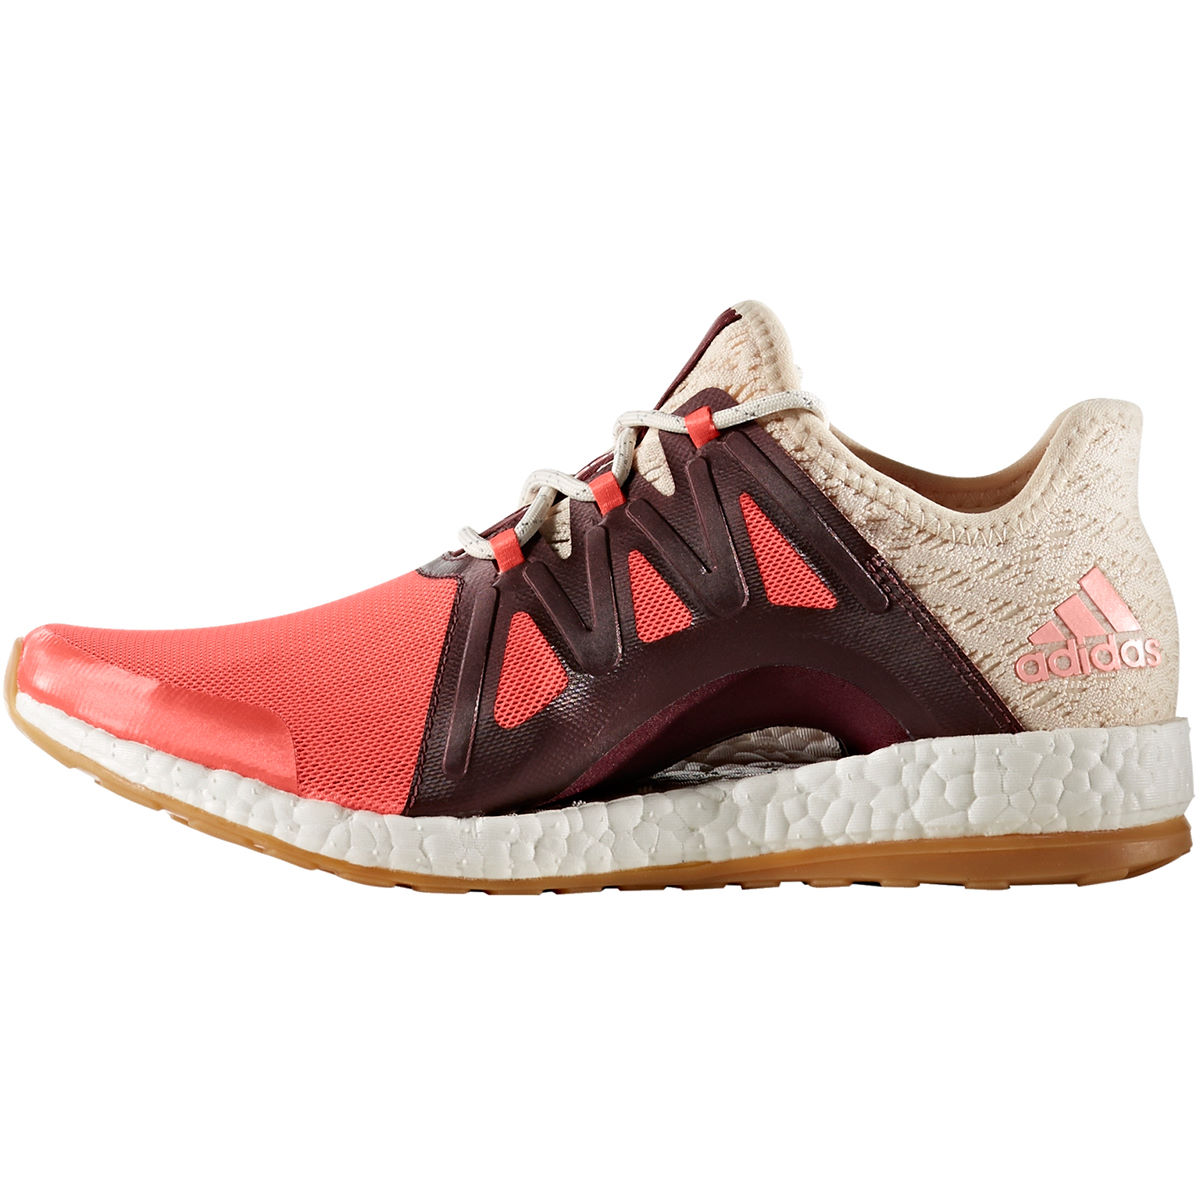 Adidas Running Shoes Pureboost Xpose